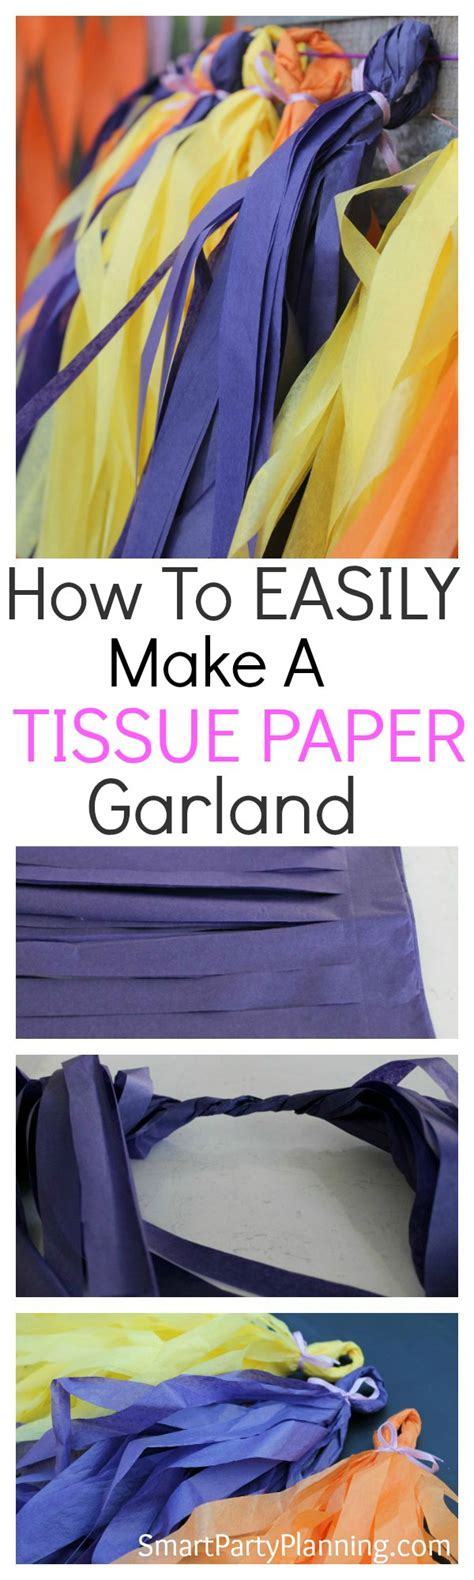 How To Make Paper Garland - how to make a tissue paper garland the easy way